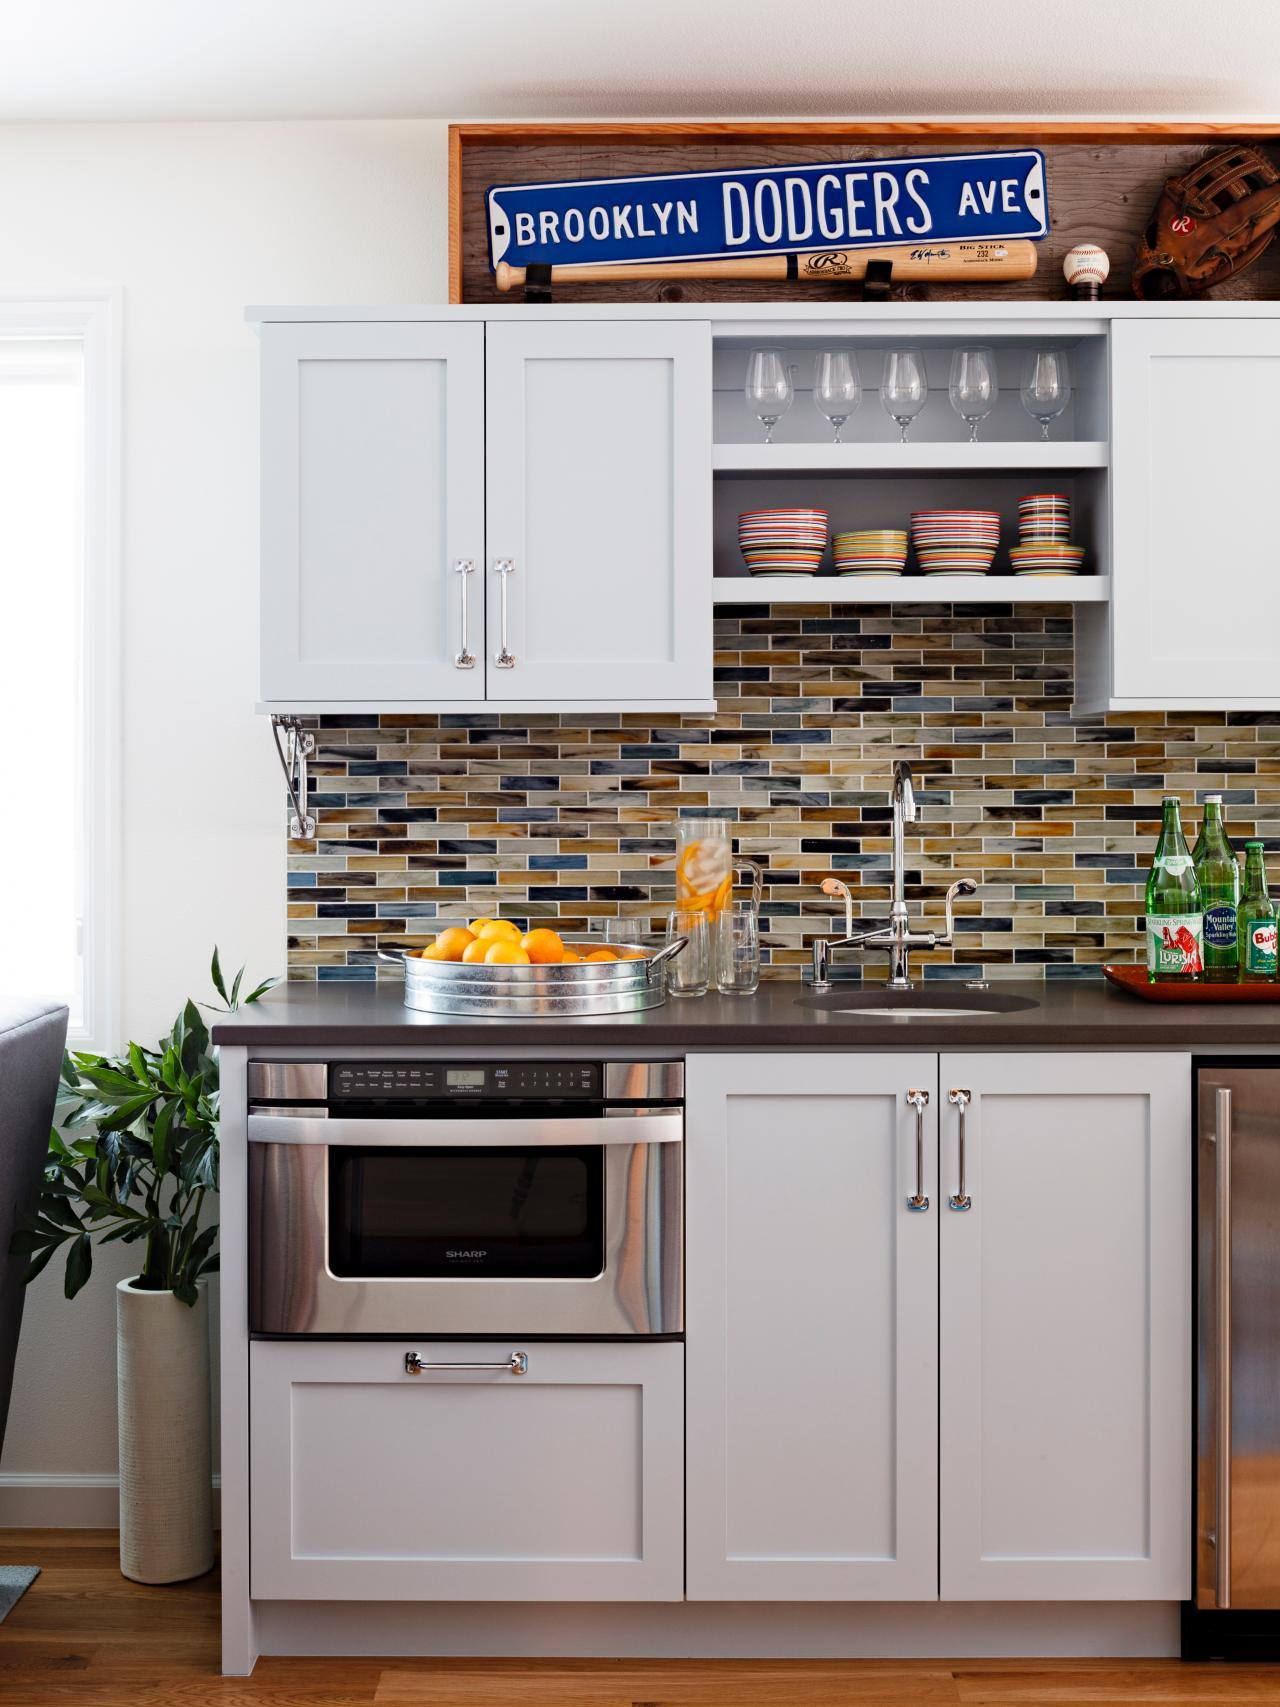 Small Tile Backsplash Design Idea